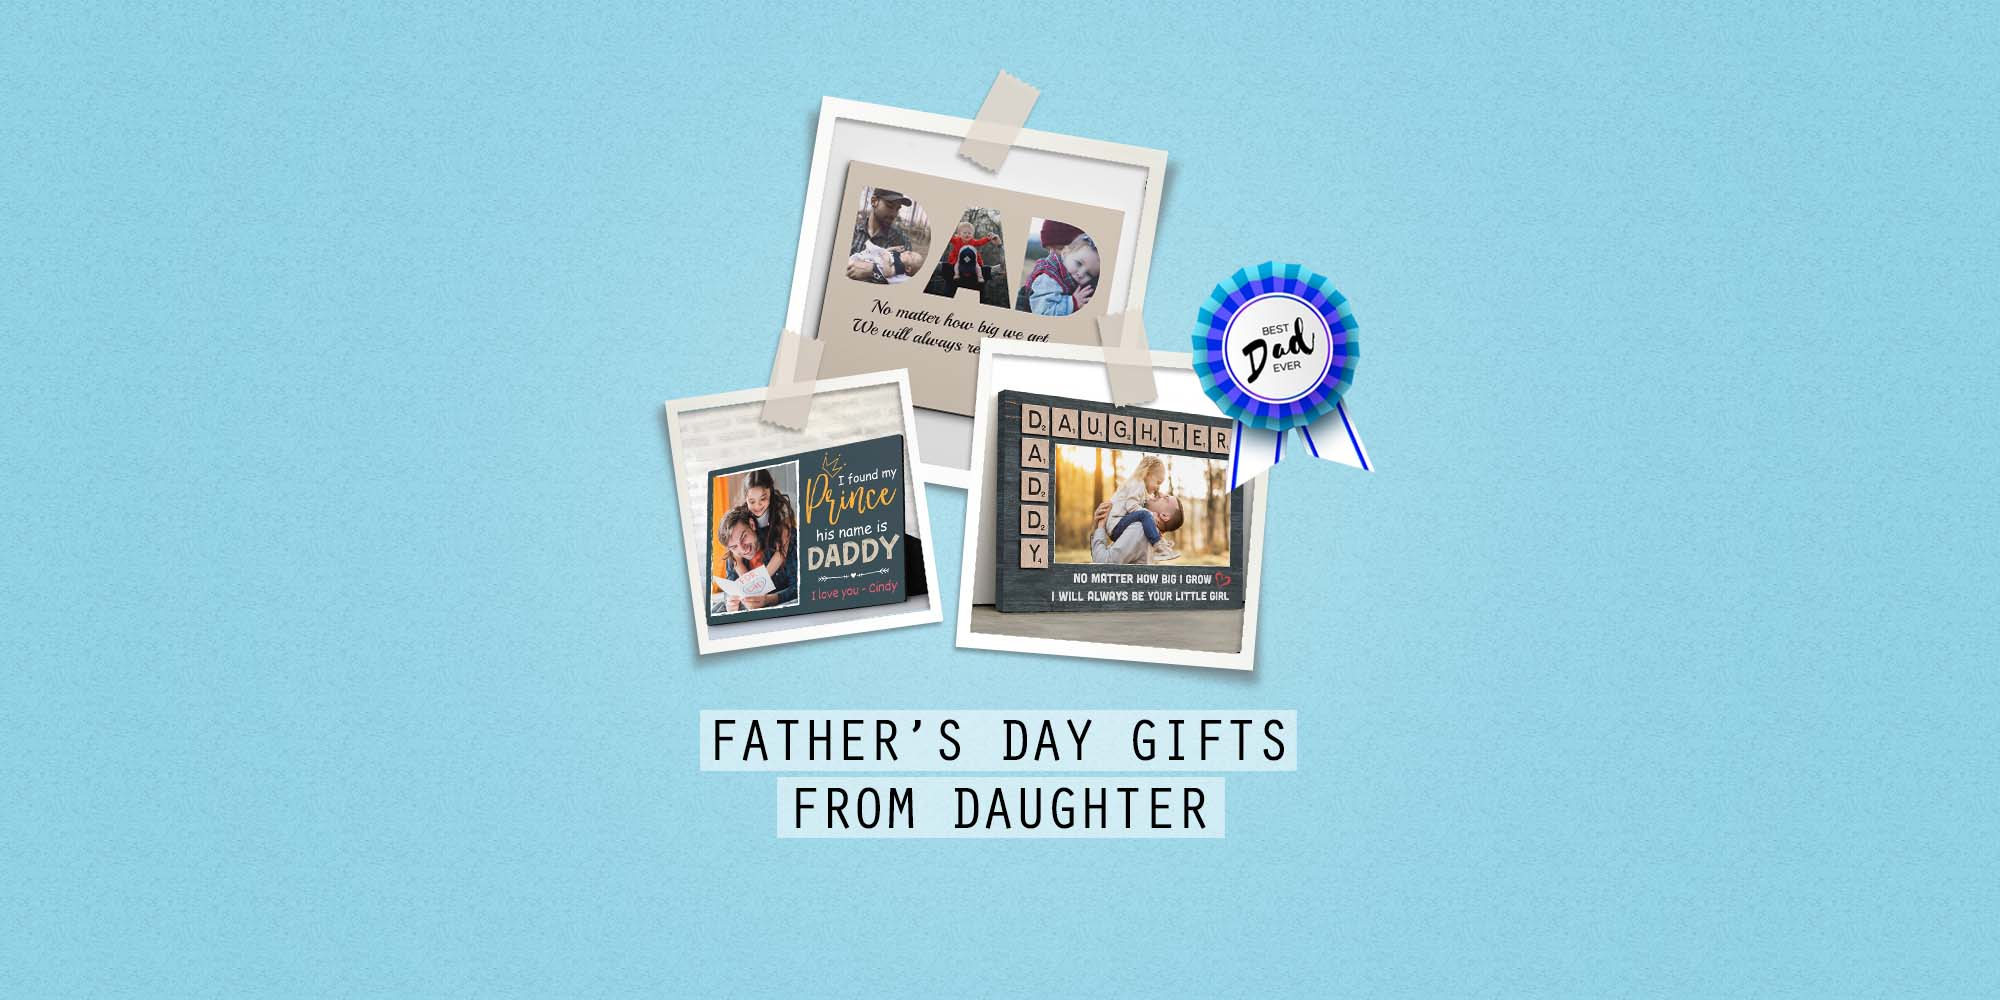 35+ Fathers Day Gift Ideas From Daughter He'll Adore (2021)